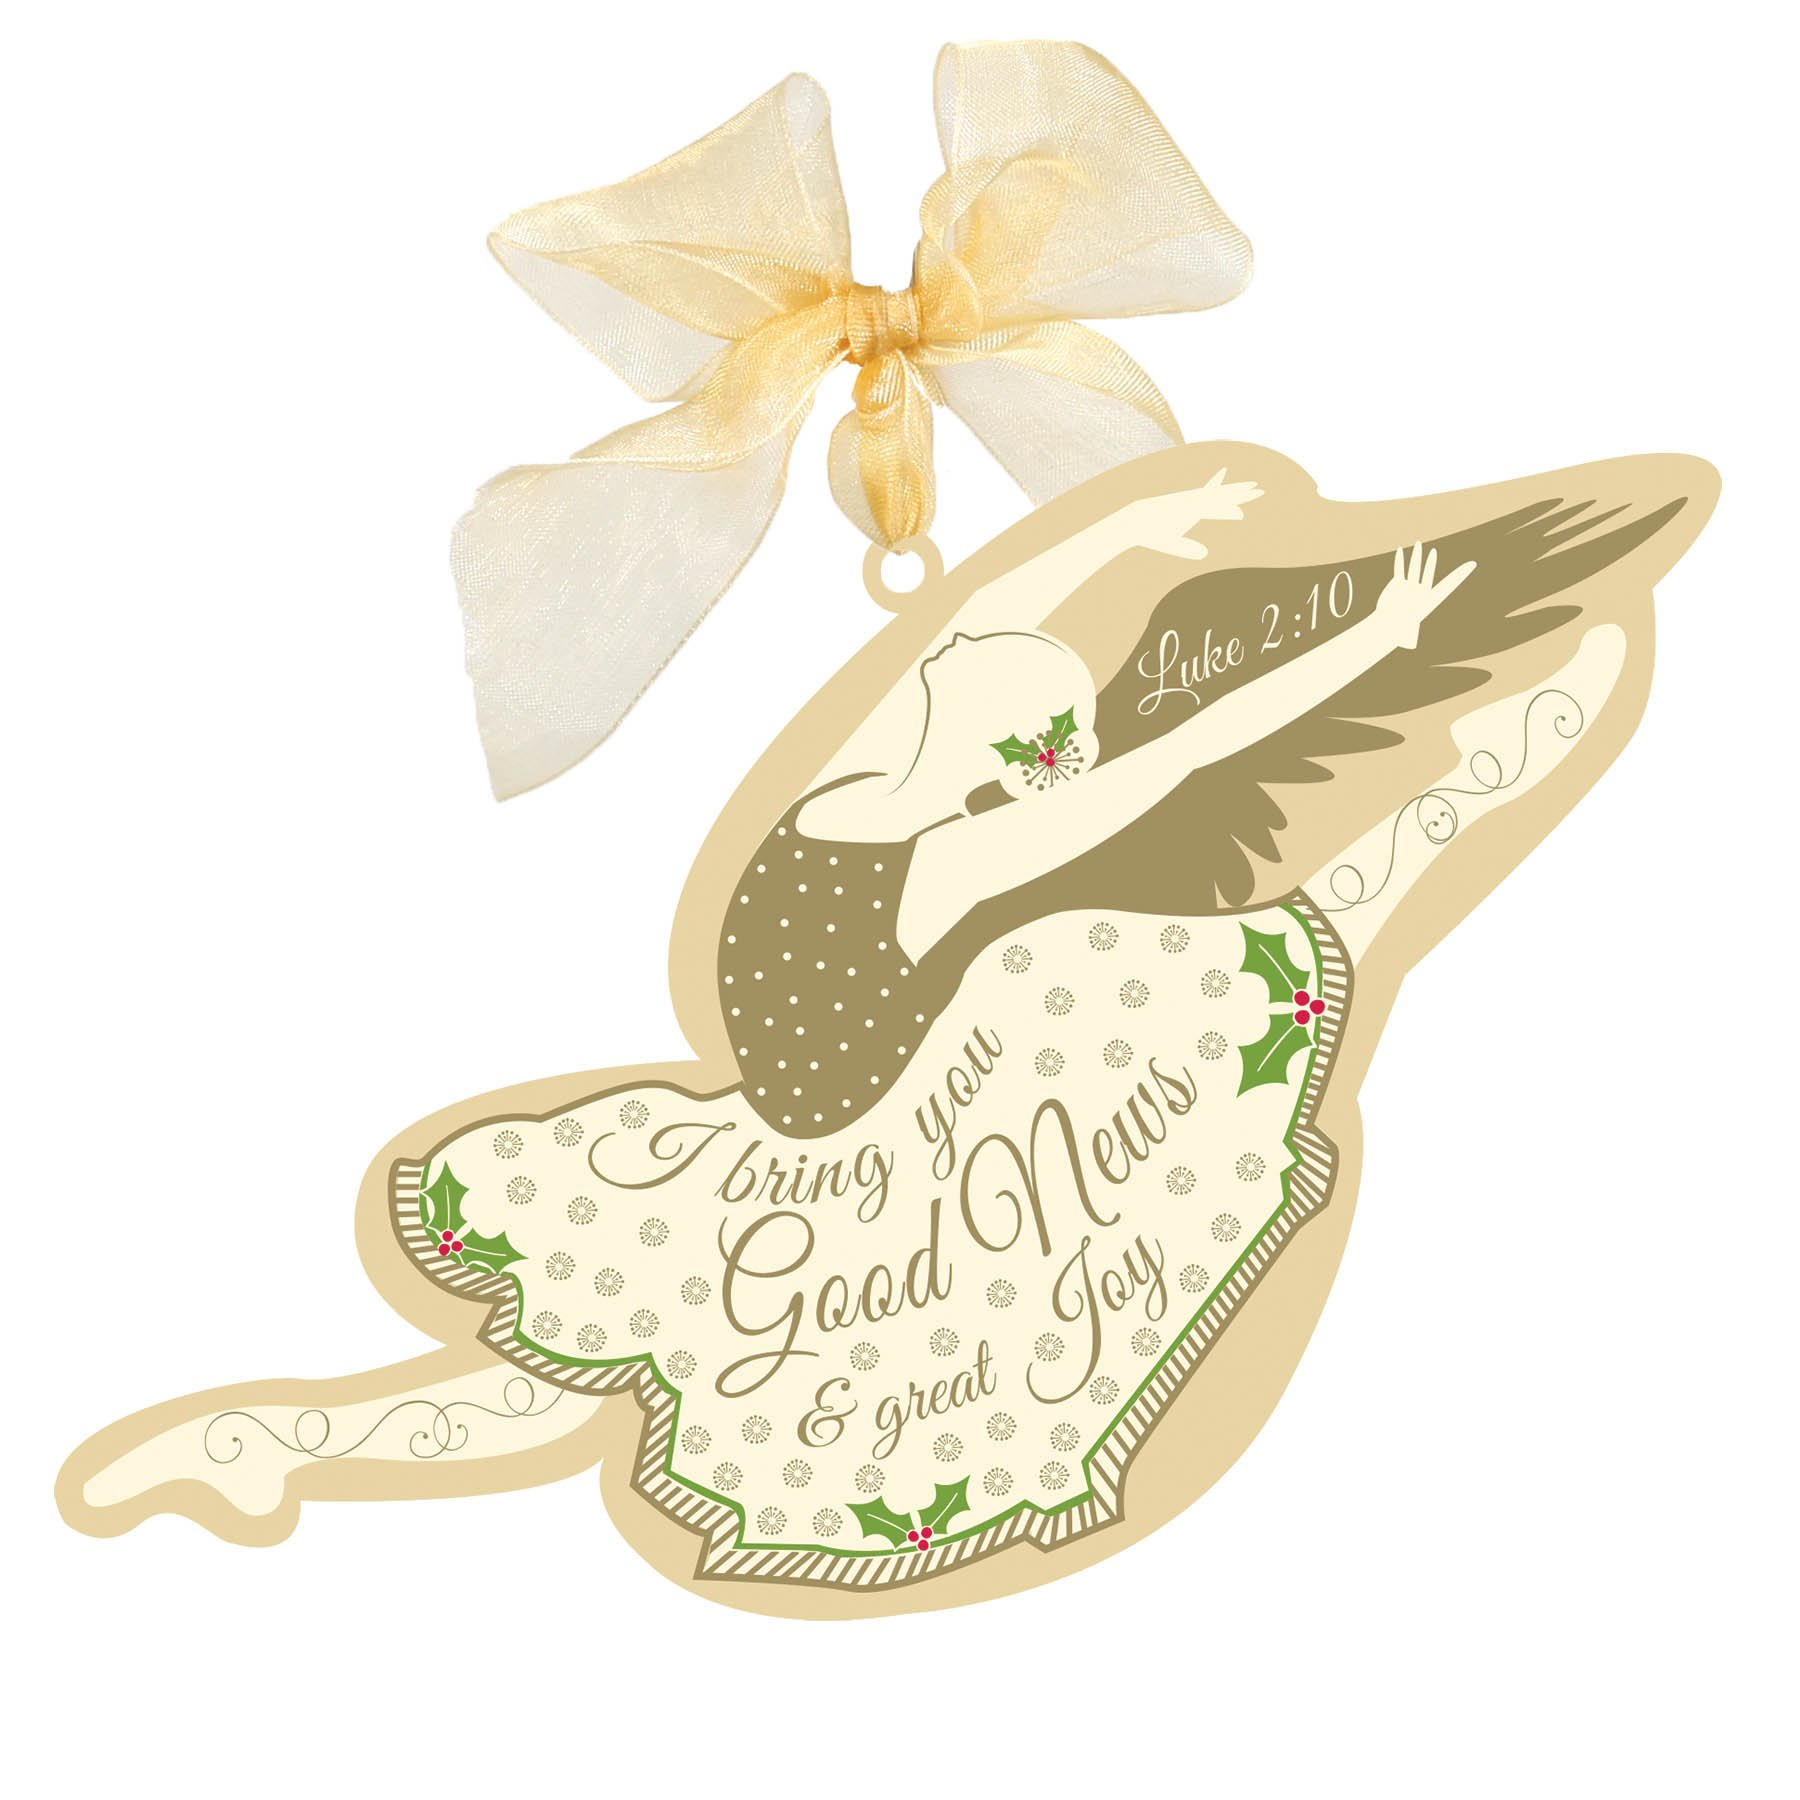 Lighthouse Gifts I Bring You Good News Gold Dancing Angel Ballerina Christian Christmas Ornament